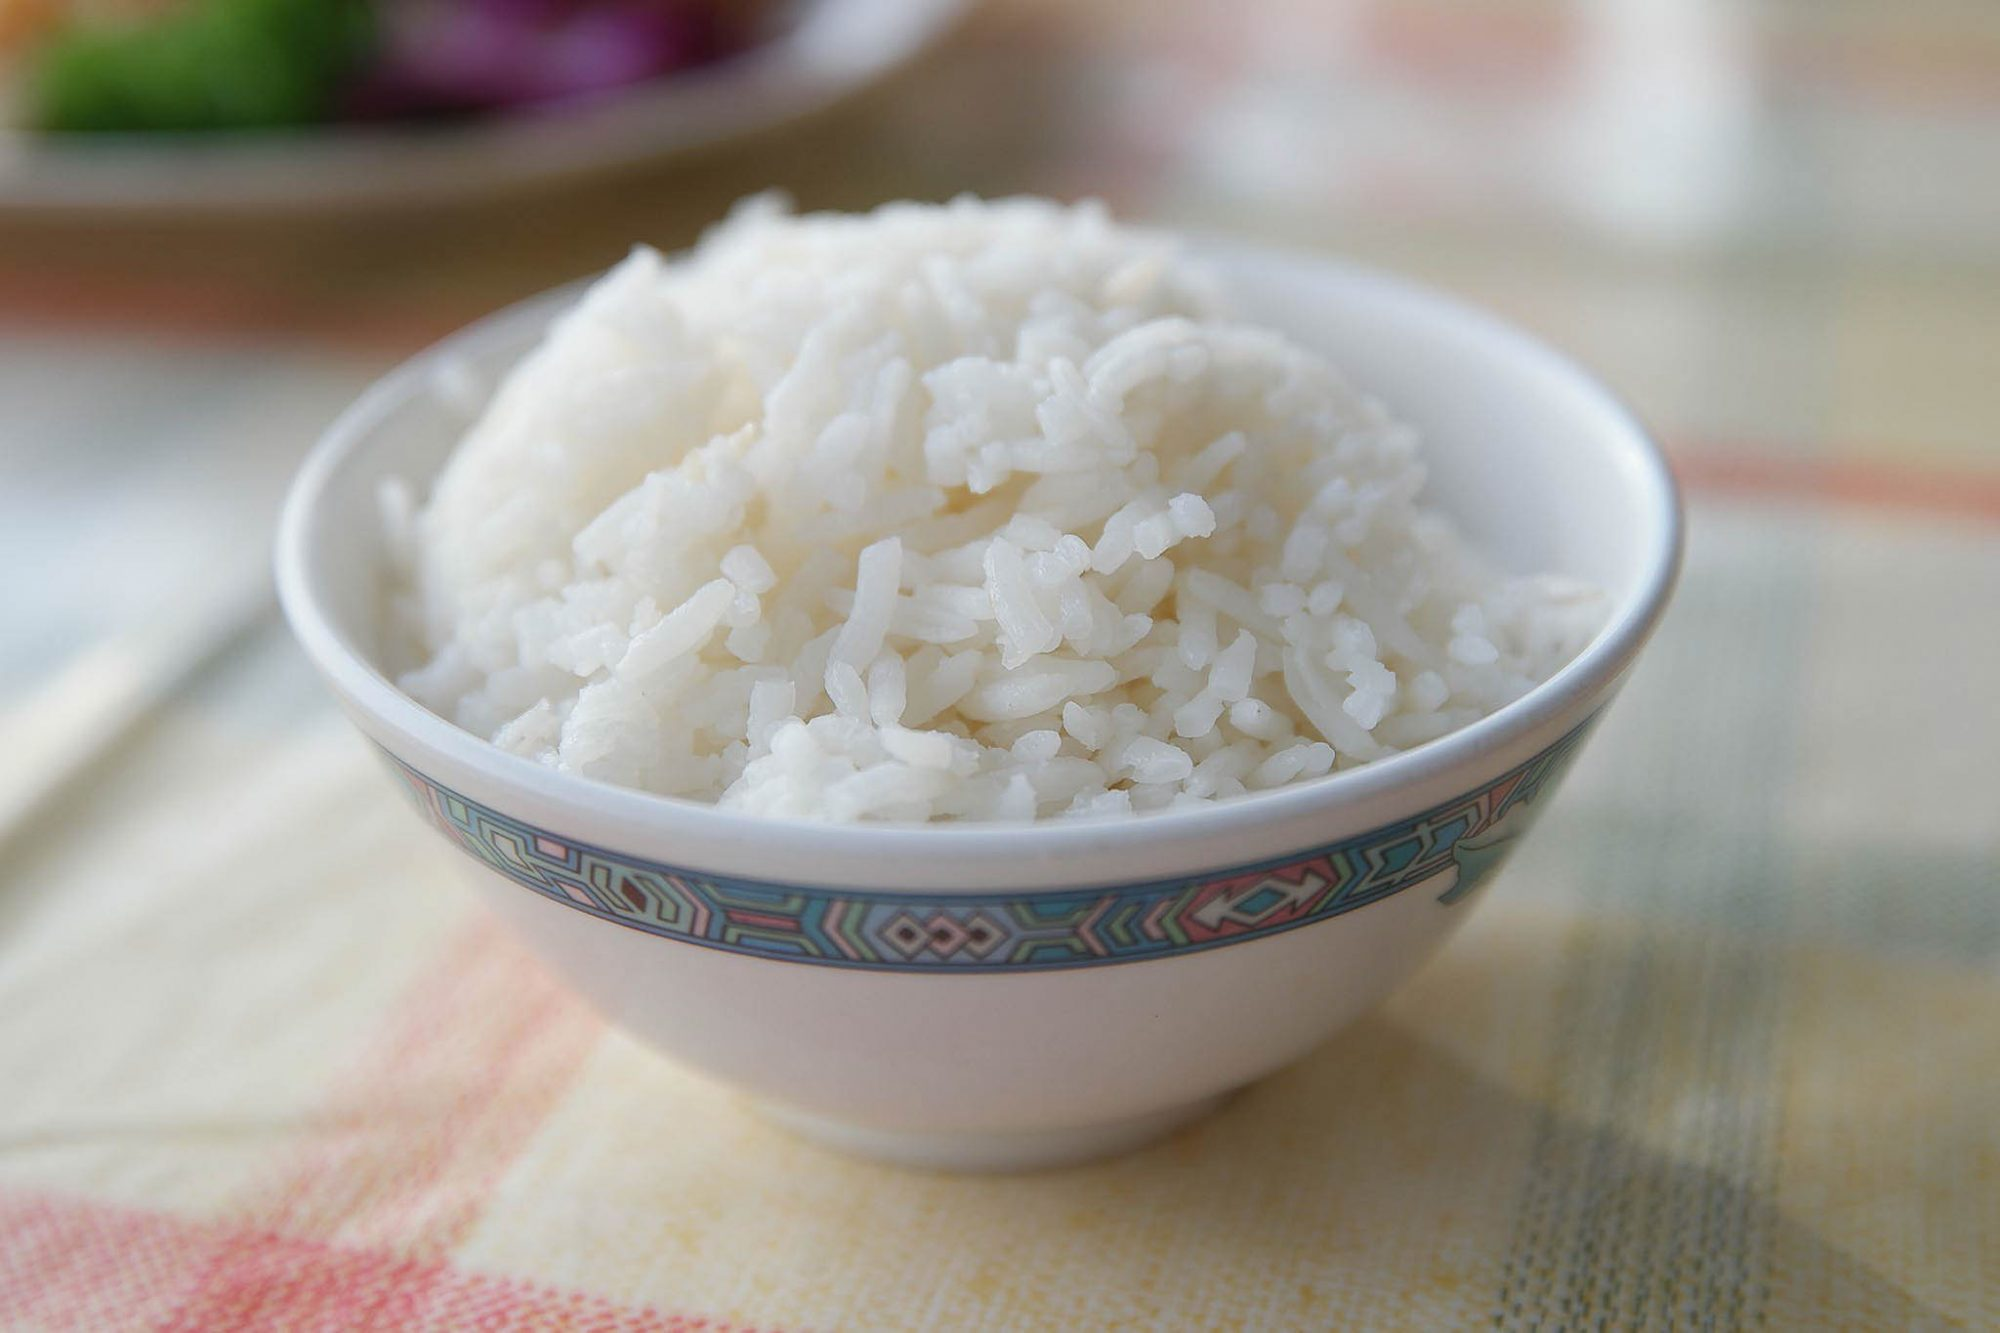 The Simple Trick for Cooking Way Better Rice (And No, It's Not Washing It)